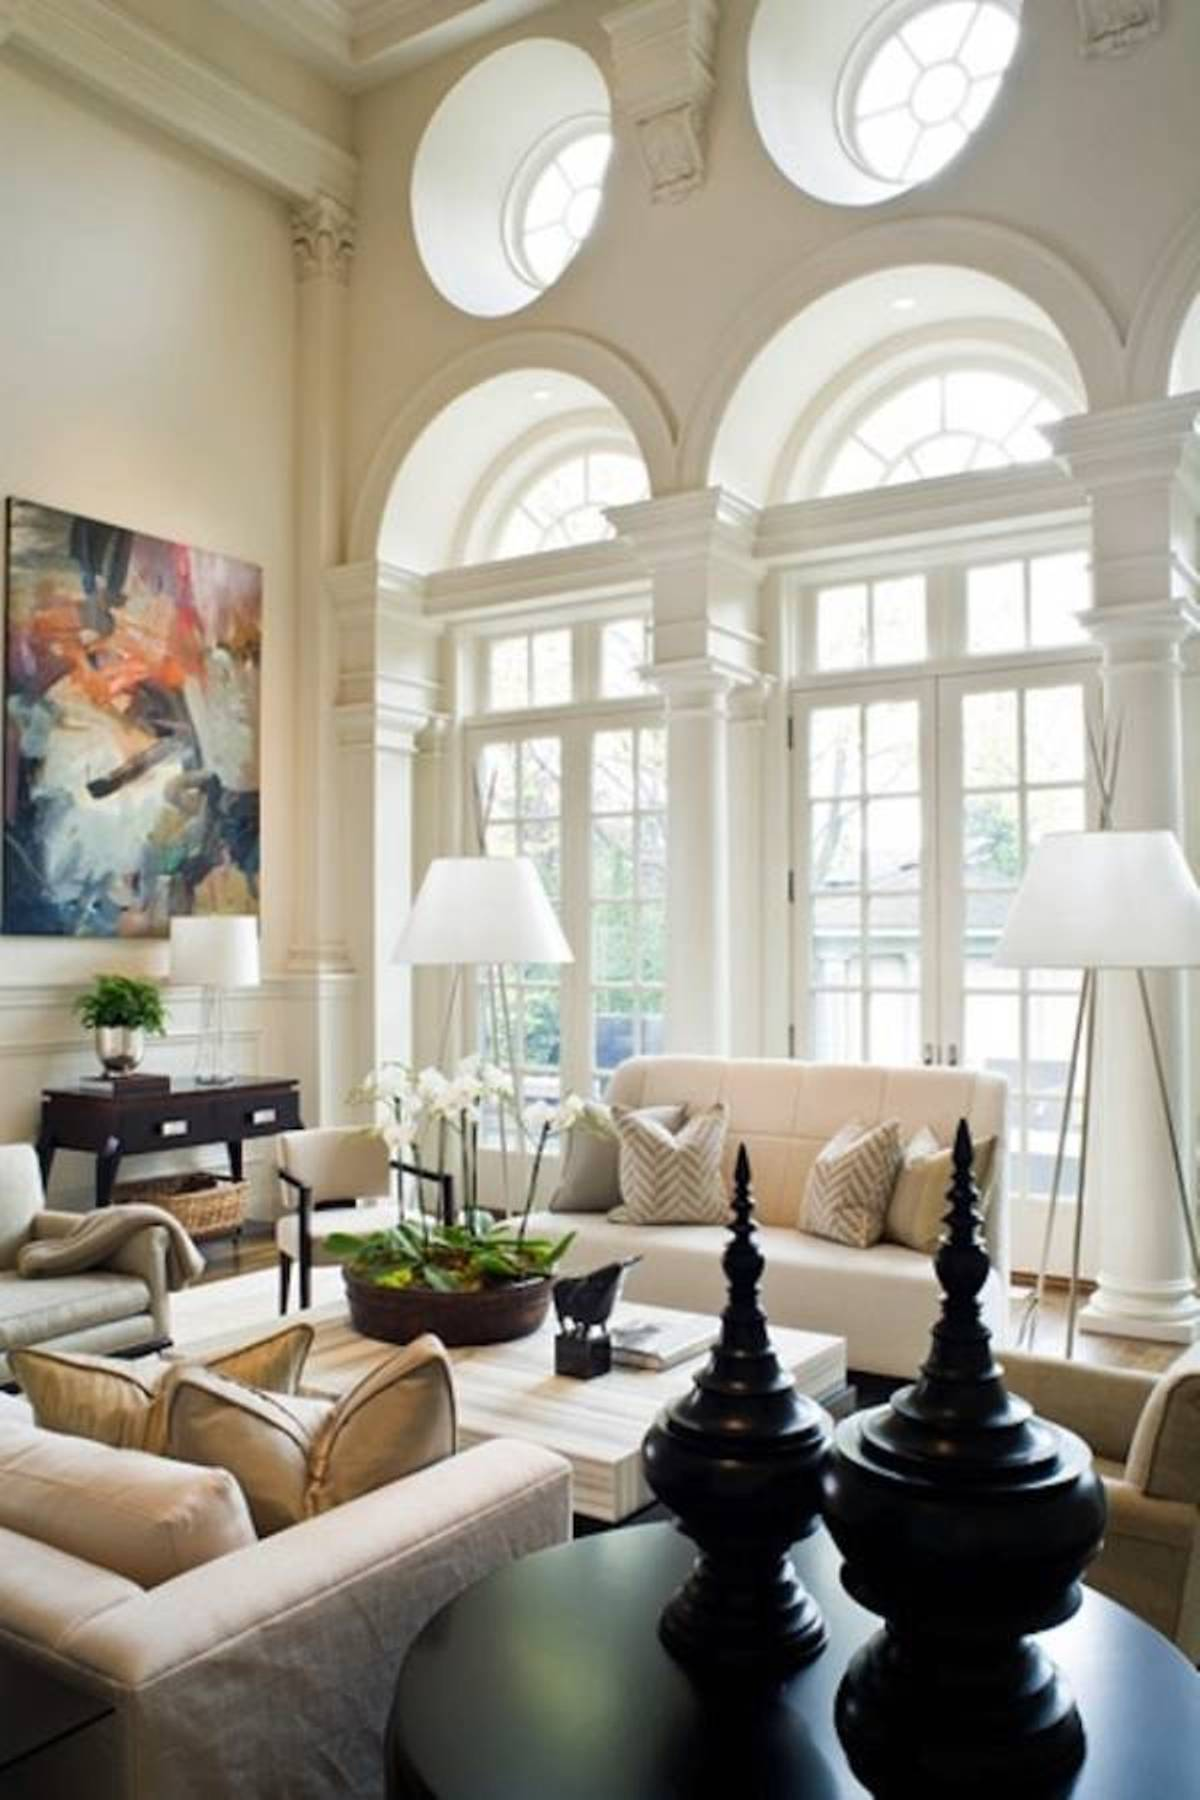 home-decor-decorating-ideas-for-bedrooms-with-high-ceilings